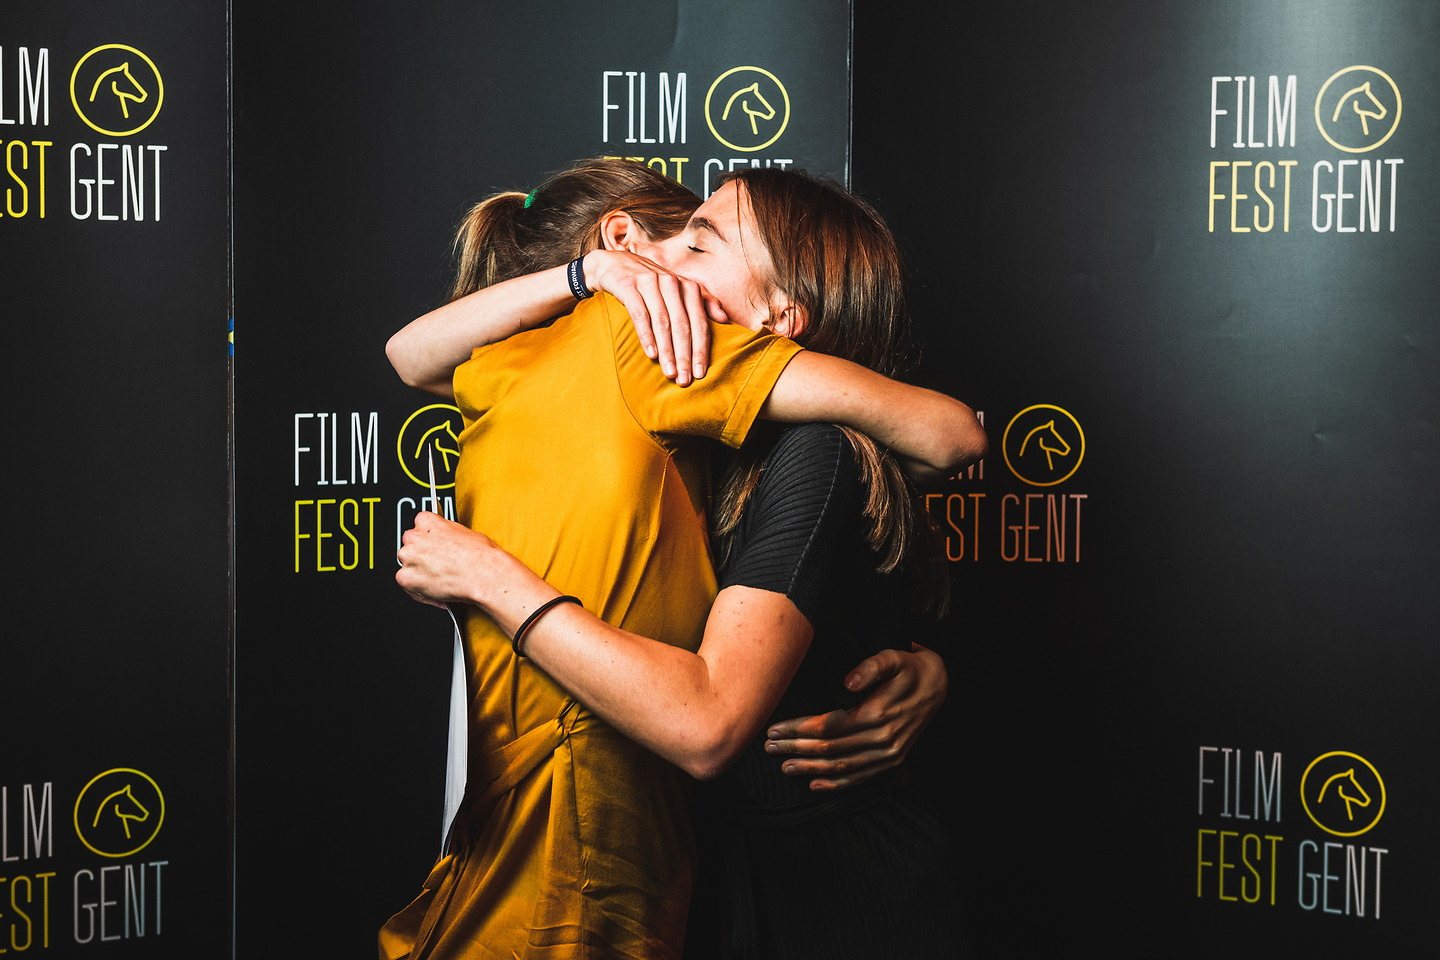 Film Fest Gent - Competition for Belgian Student Shorts